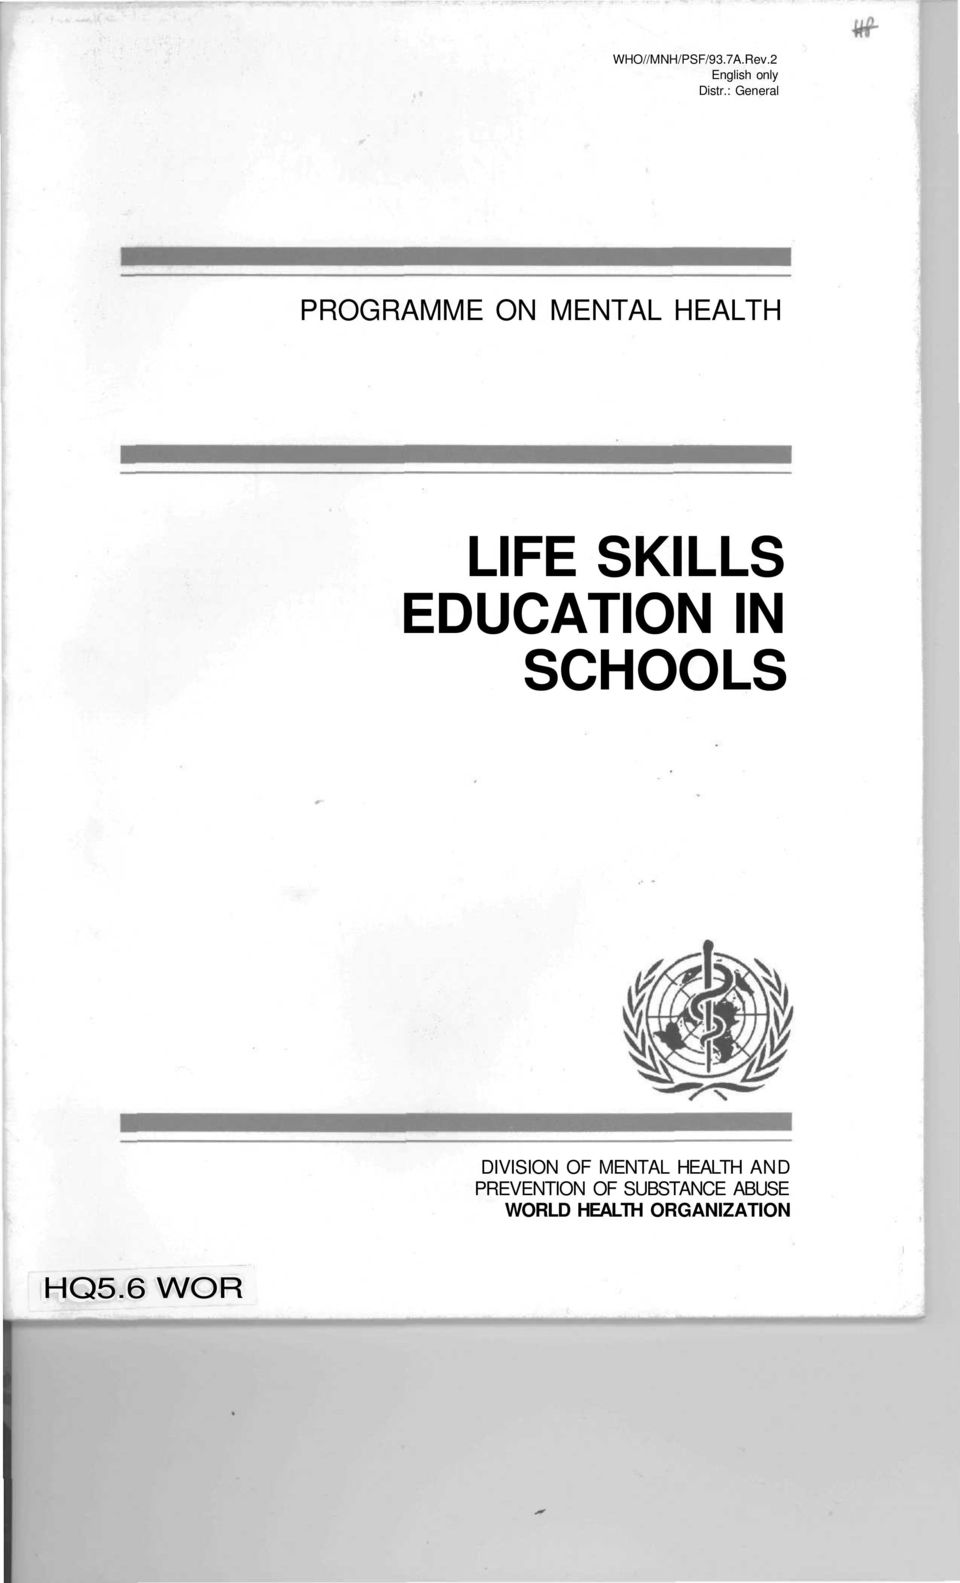 EDUCATION IN SCHOOLS DIVISION OF MENTAL HEALTH AND